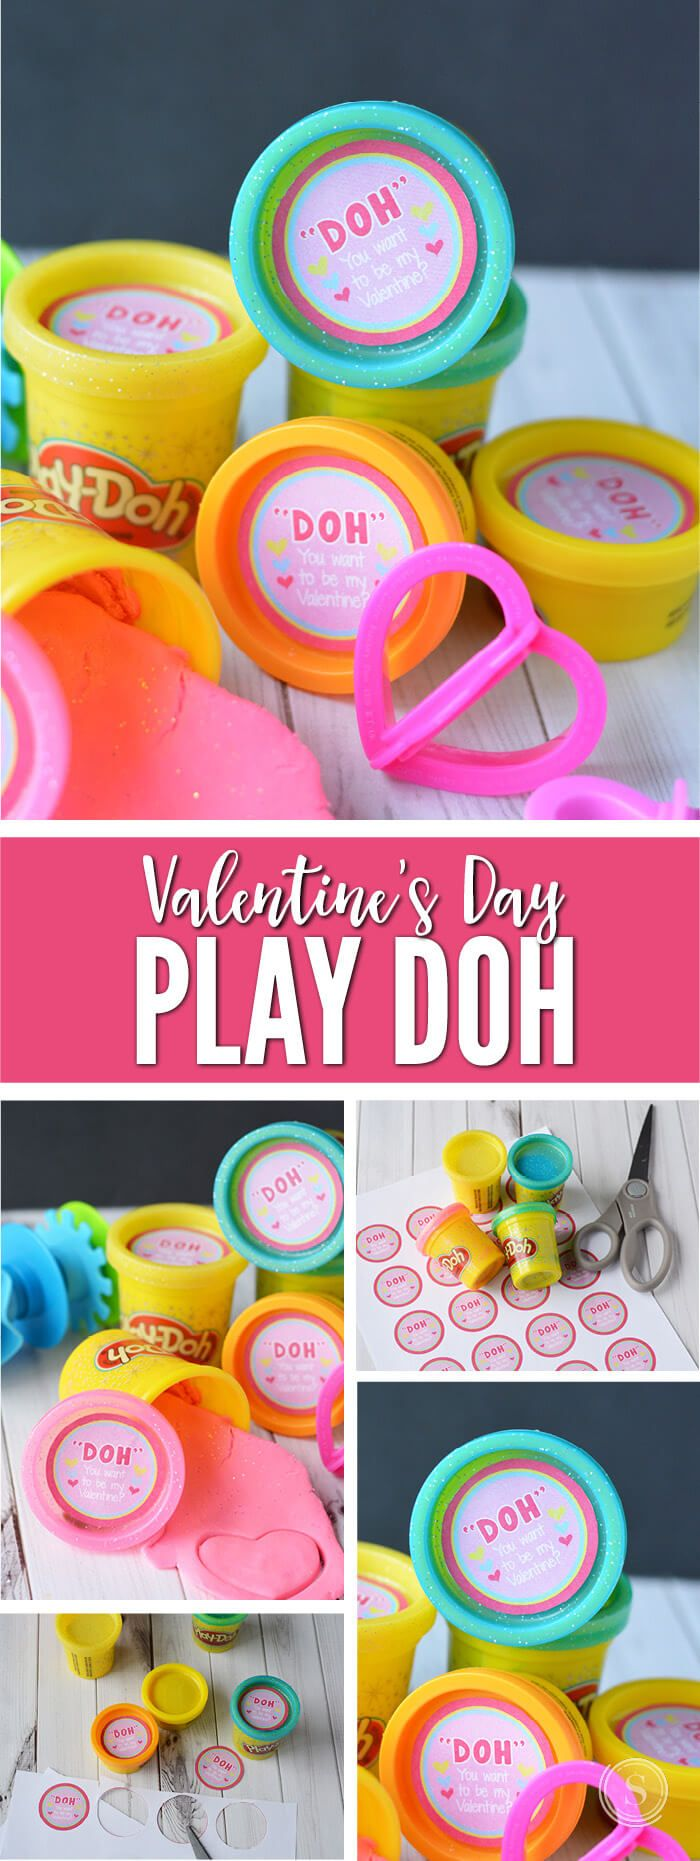 "Grab this FREE Printable ""Doh"" You Want to Be My Valentine Gift Tag and make your own Non-Candy Allergy Free Valentines for your Kids Classroom! via @Passion4Savings"